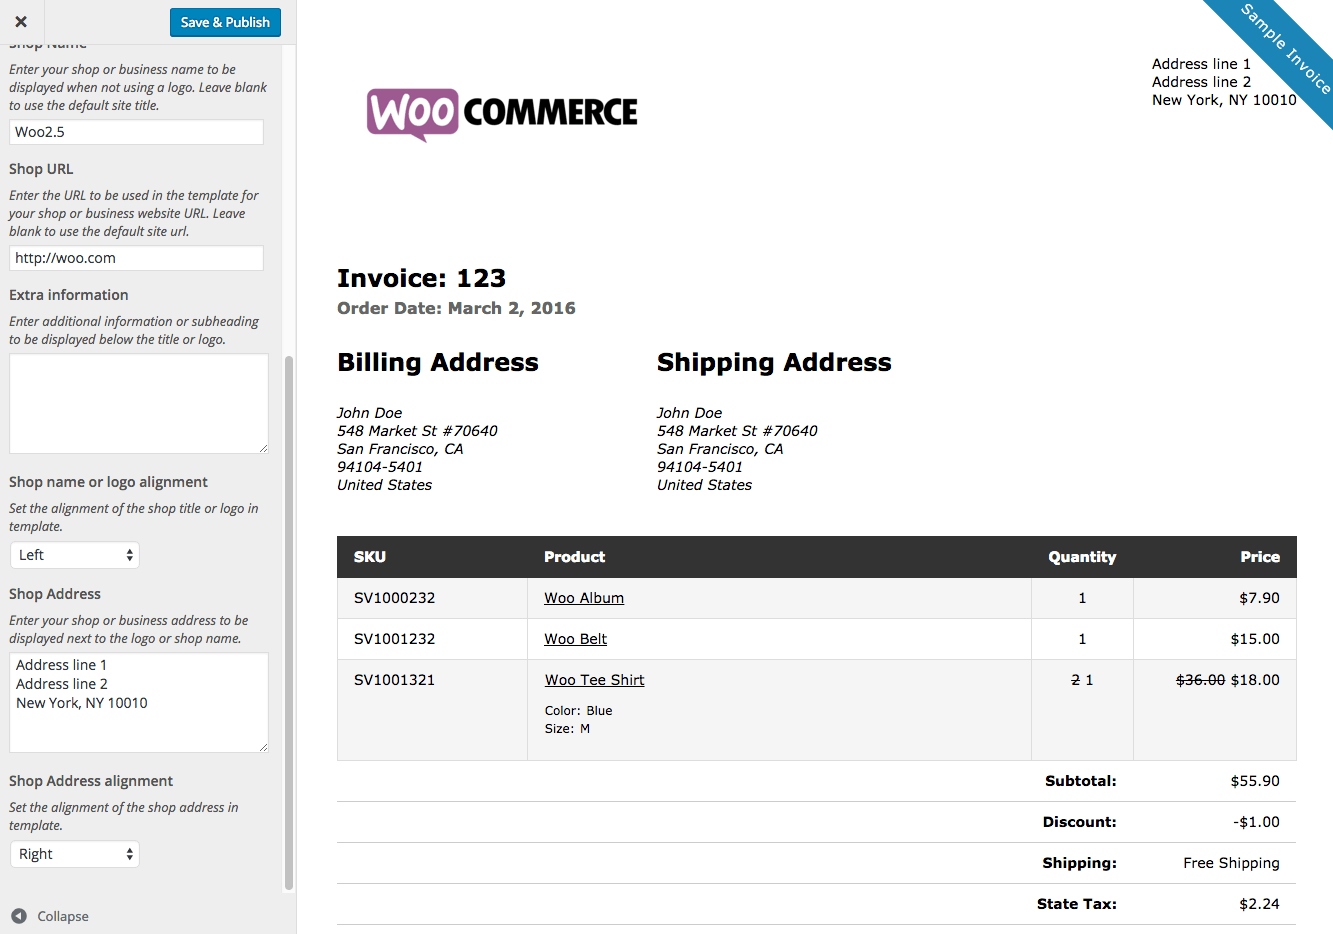 Coolmathgamesus  Splendid Print Invoices Amp Packing Lists  Woocommerce With Interesting Woocommerce Print Invoices  Packing Lists Customizer With Beautiful Simple Invoice Template Pdf Also Online Invoice Free In Addition Invoice Bill And General Invoice As Well As Invoice Paid Additionally Repair Invoice Template From Woocommercecom With Coolmathgamesus  Interesting Print Invoices Amp Packing Lists  Woocommerce With Beautiful Woocommerce Print Invoices  Packing Lists Customizer And Splendid Simple Invoice Template Pdf Also Online Invoice Free In Addition Invoice Bill From Woocommercecom